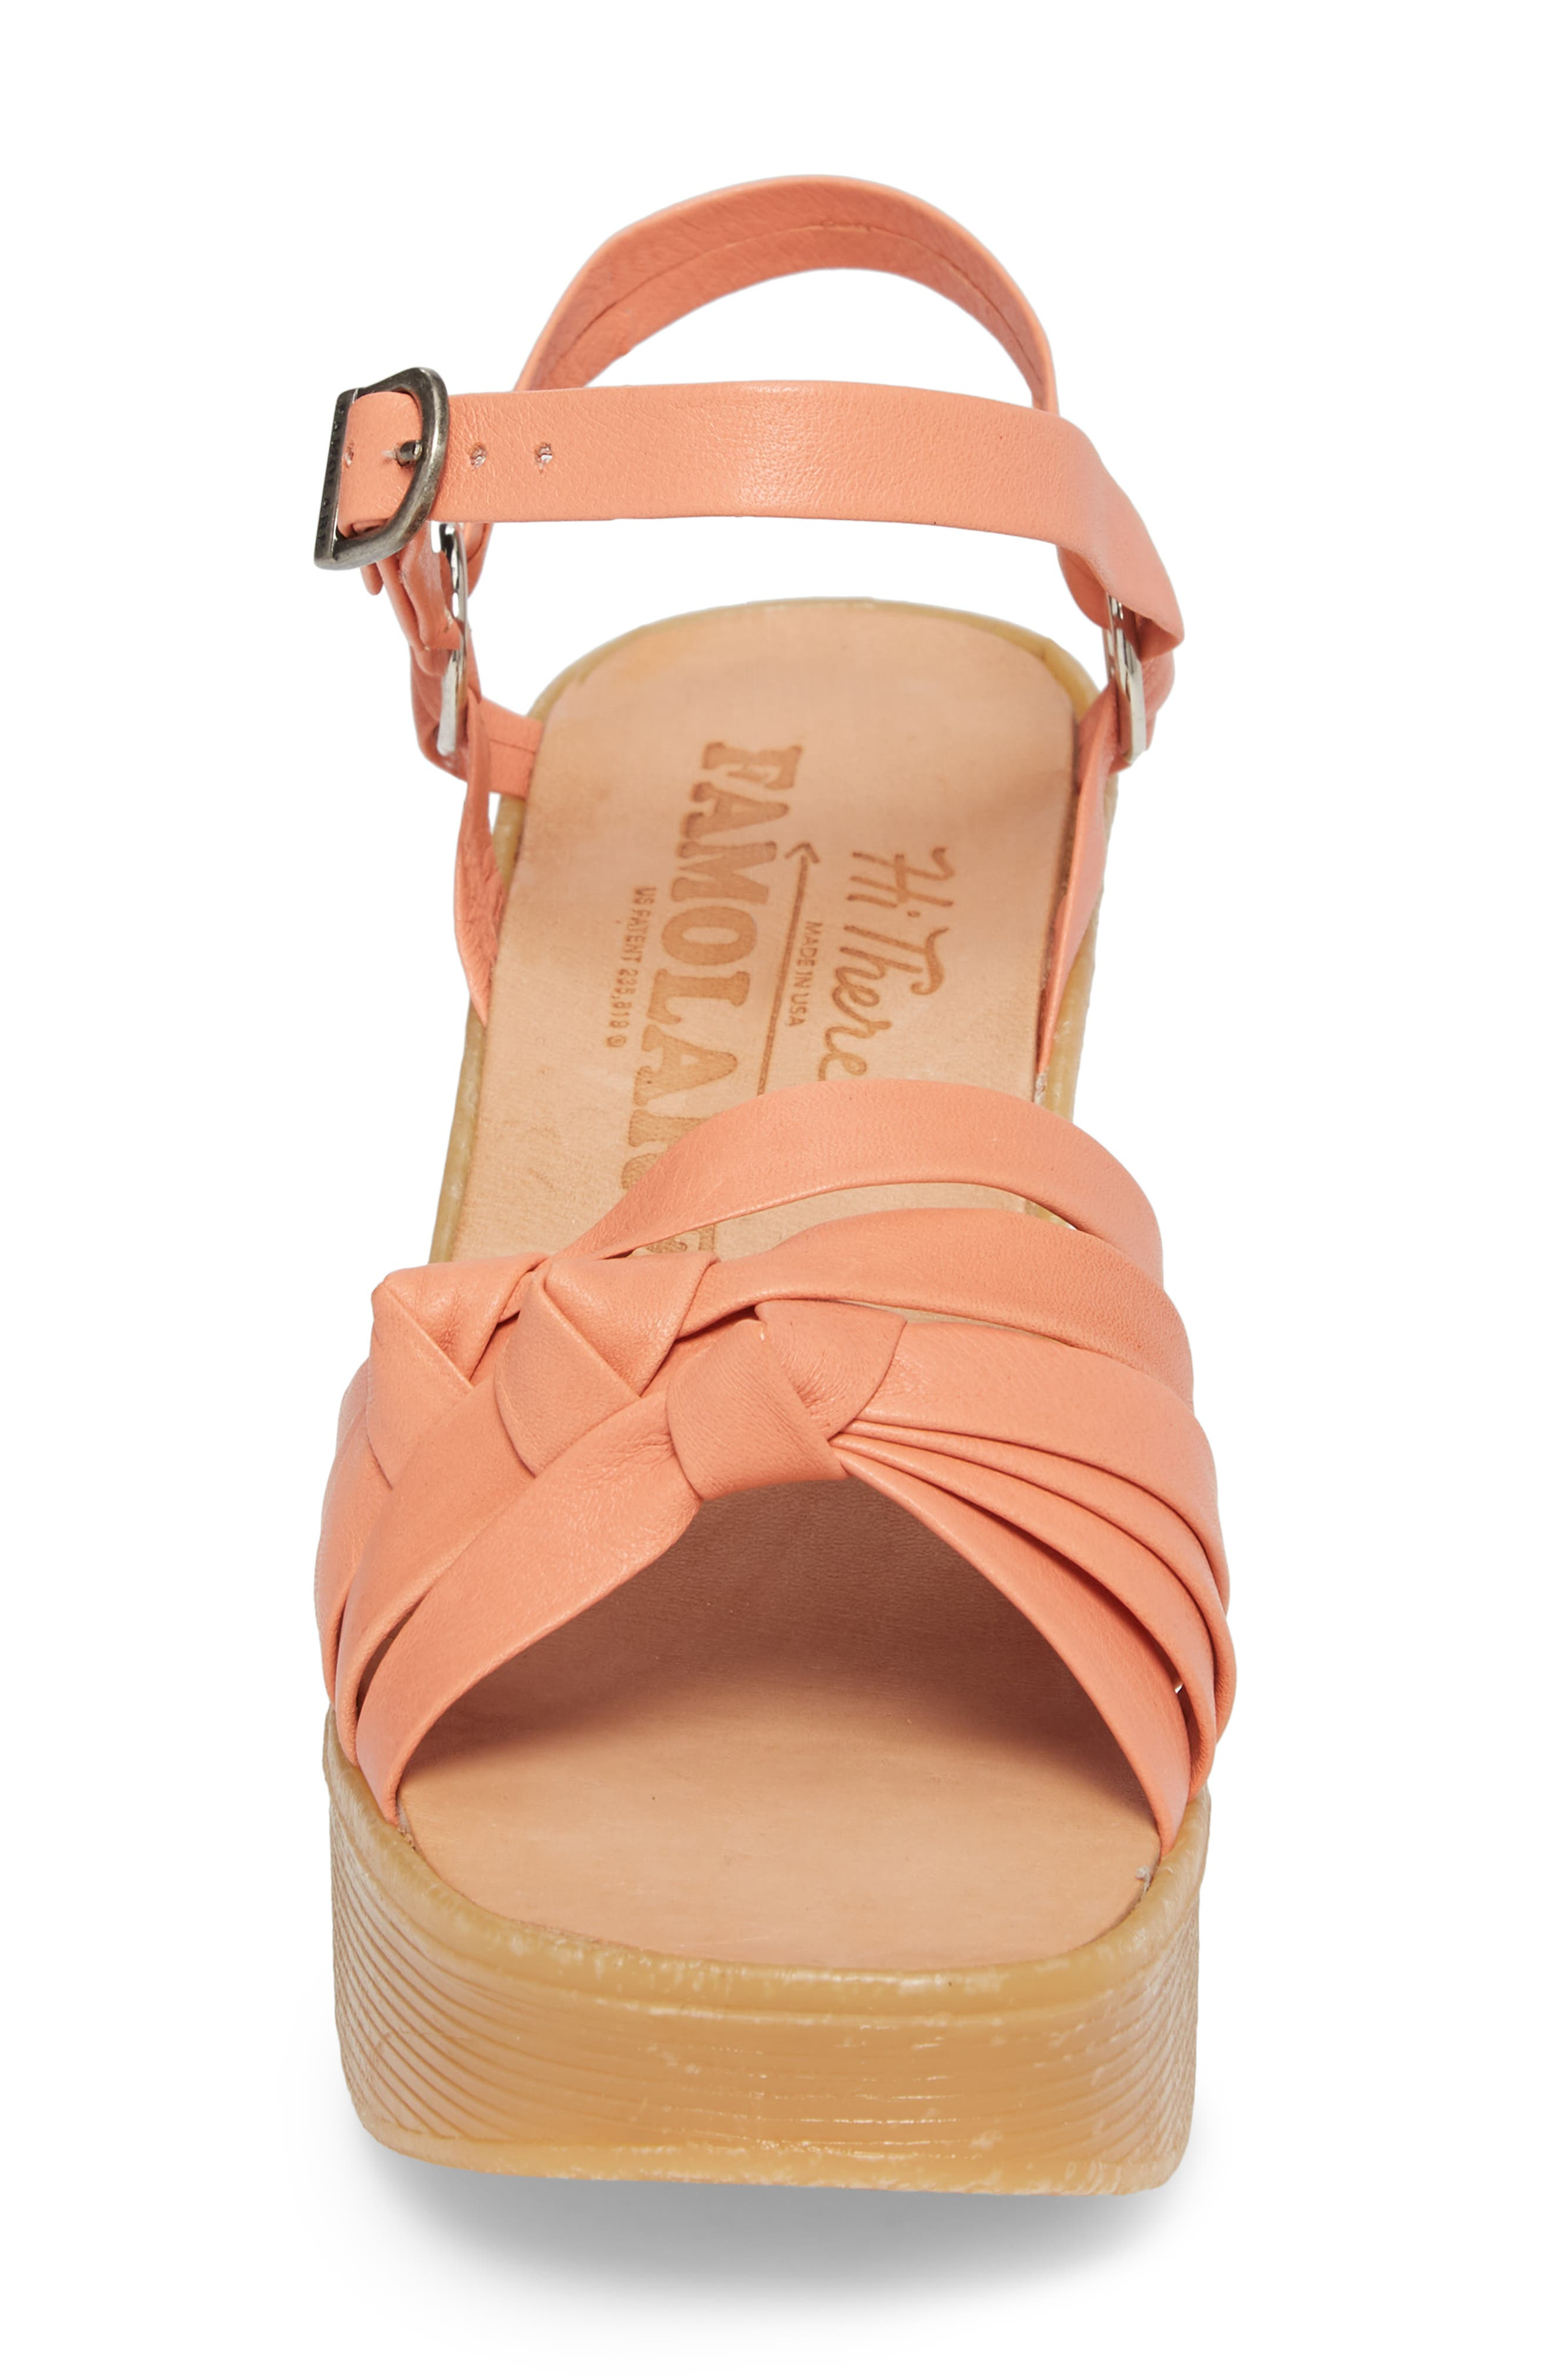 Knot So Fast Wedge Sandal,                             Alternate thumbnail 4, color,                             Salmon Leather